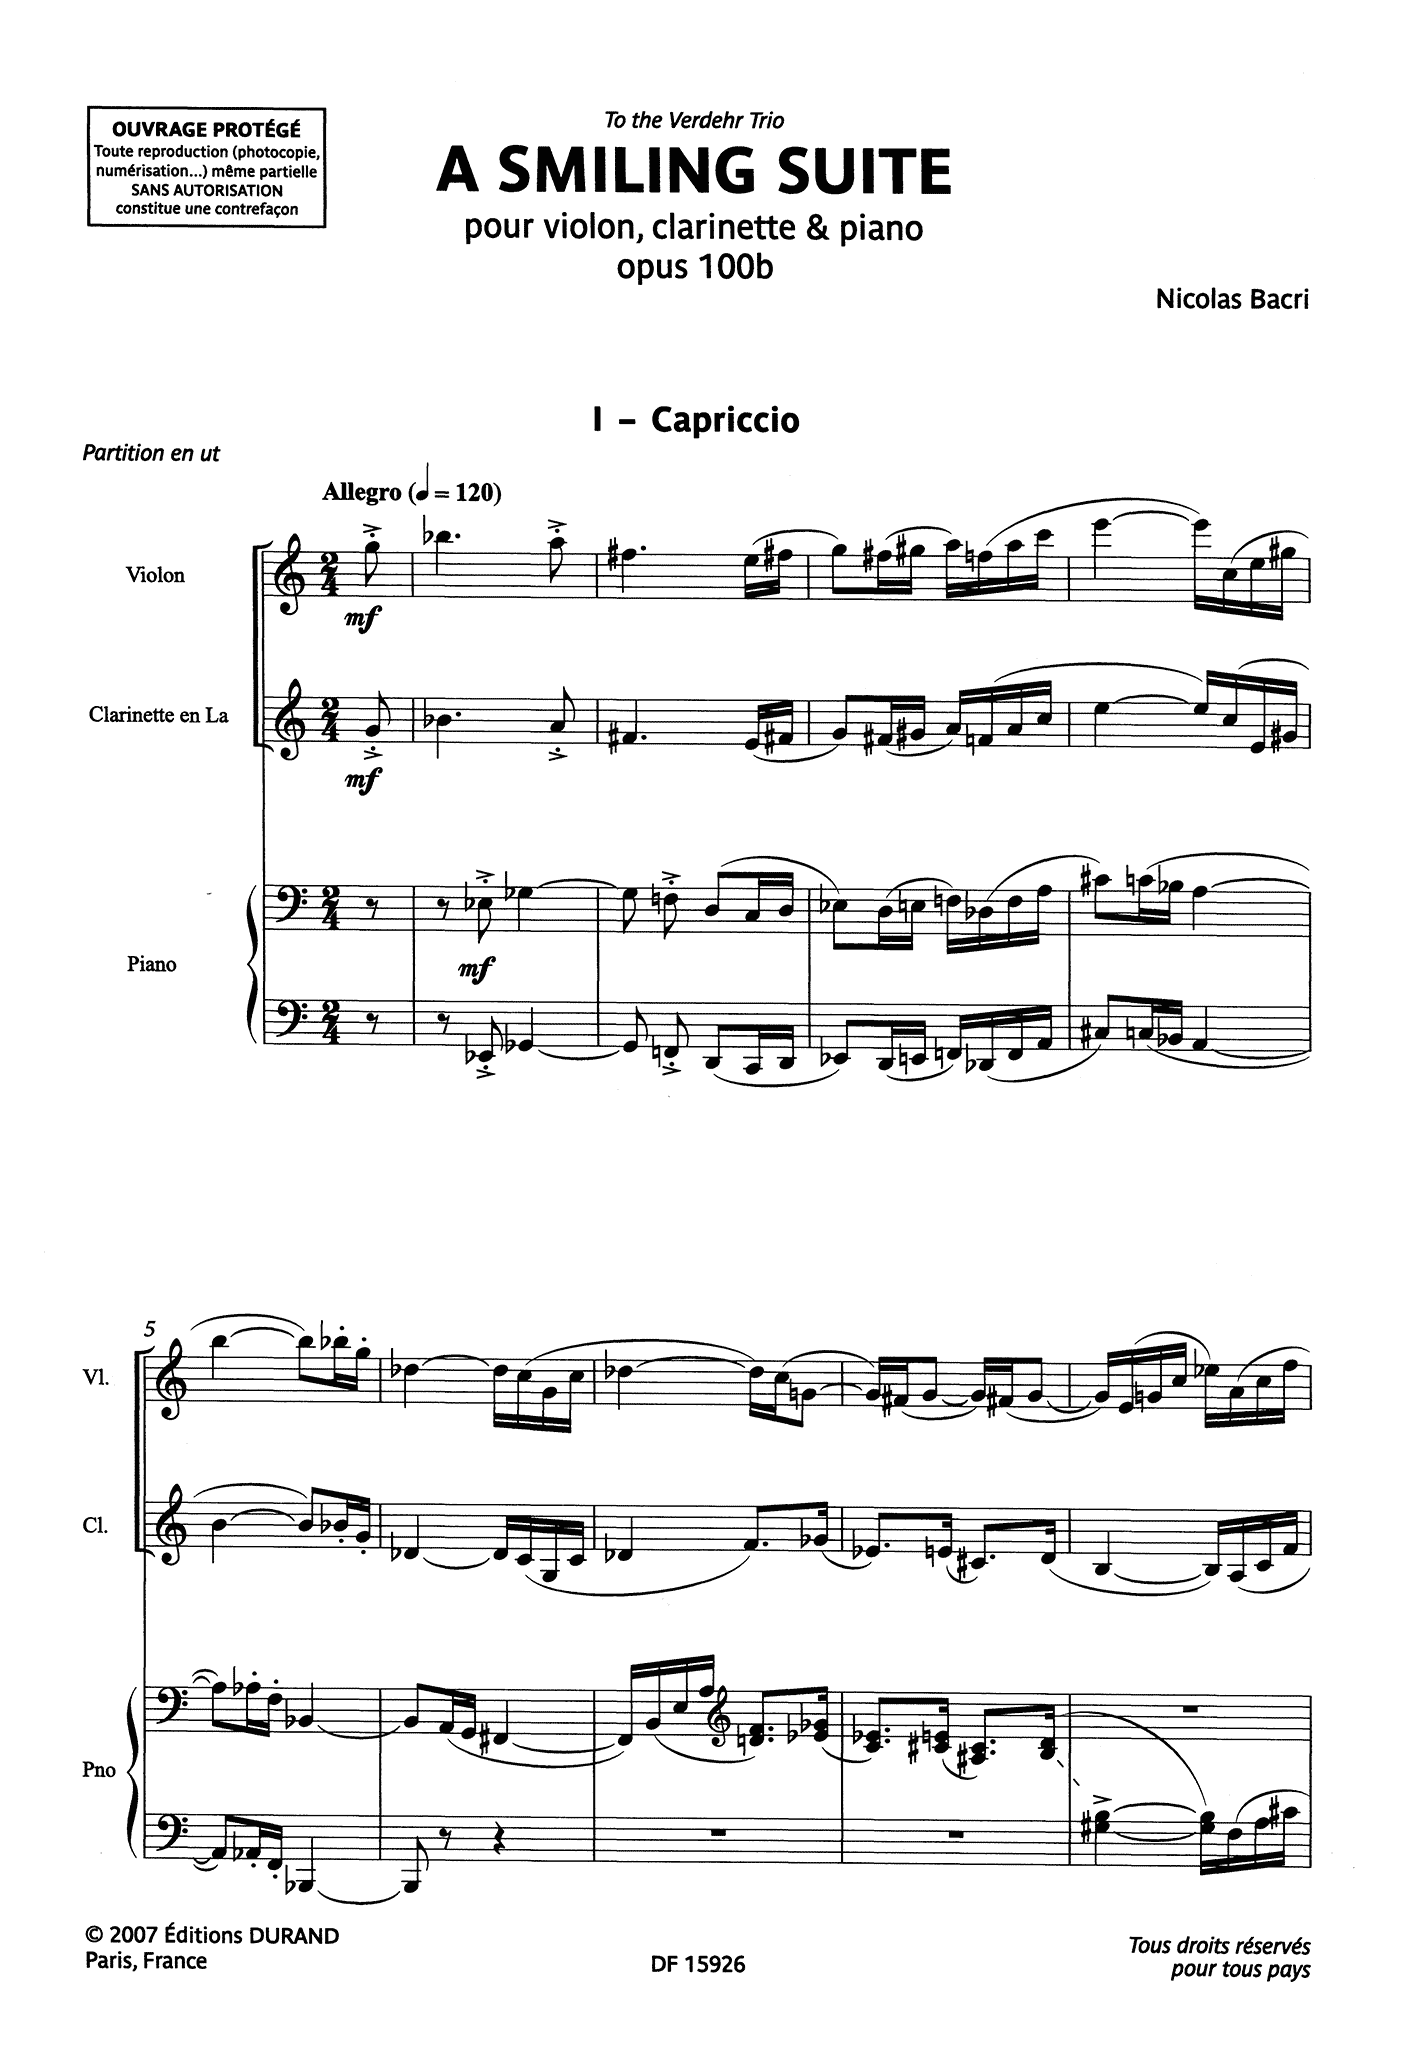 Bacri A Smiling Suite, Op. 100b - Movement 1